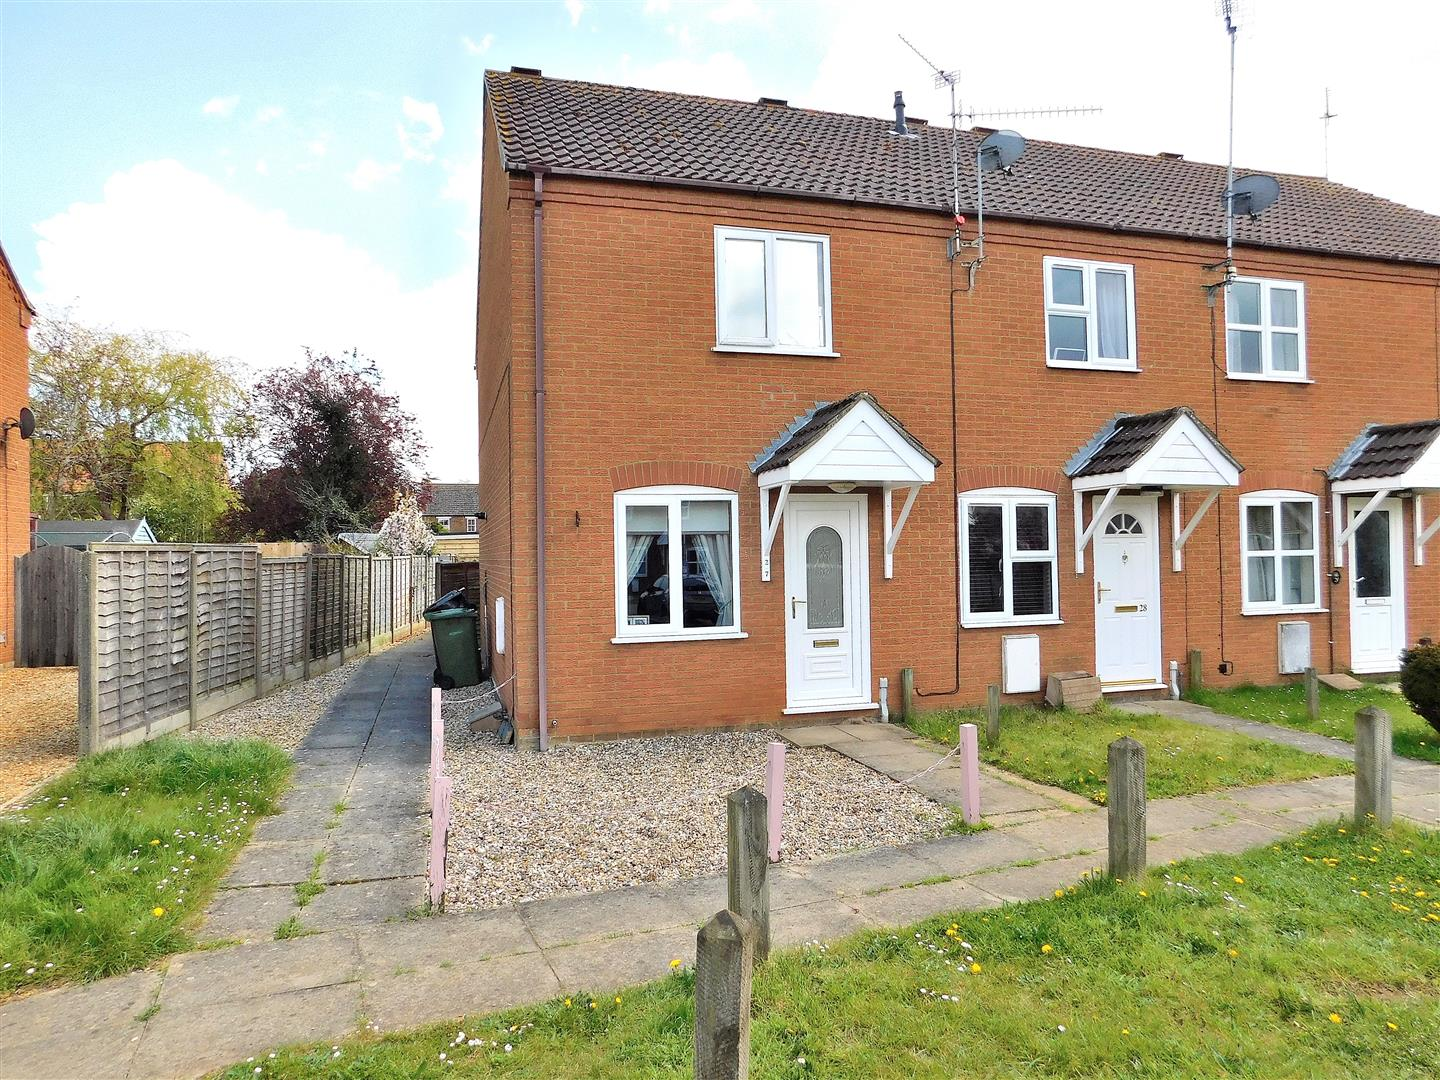 2 bed end of terrace house for sale in Wallace Twite Way, King's Lynn  - Property Image 1